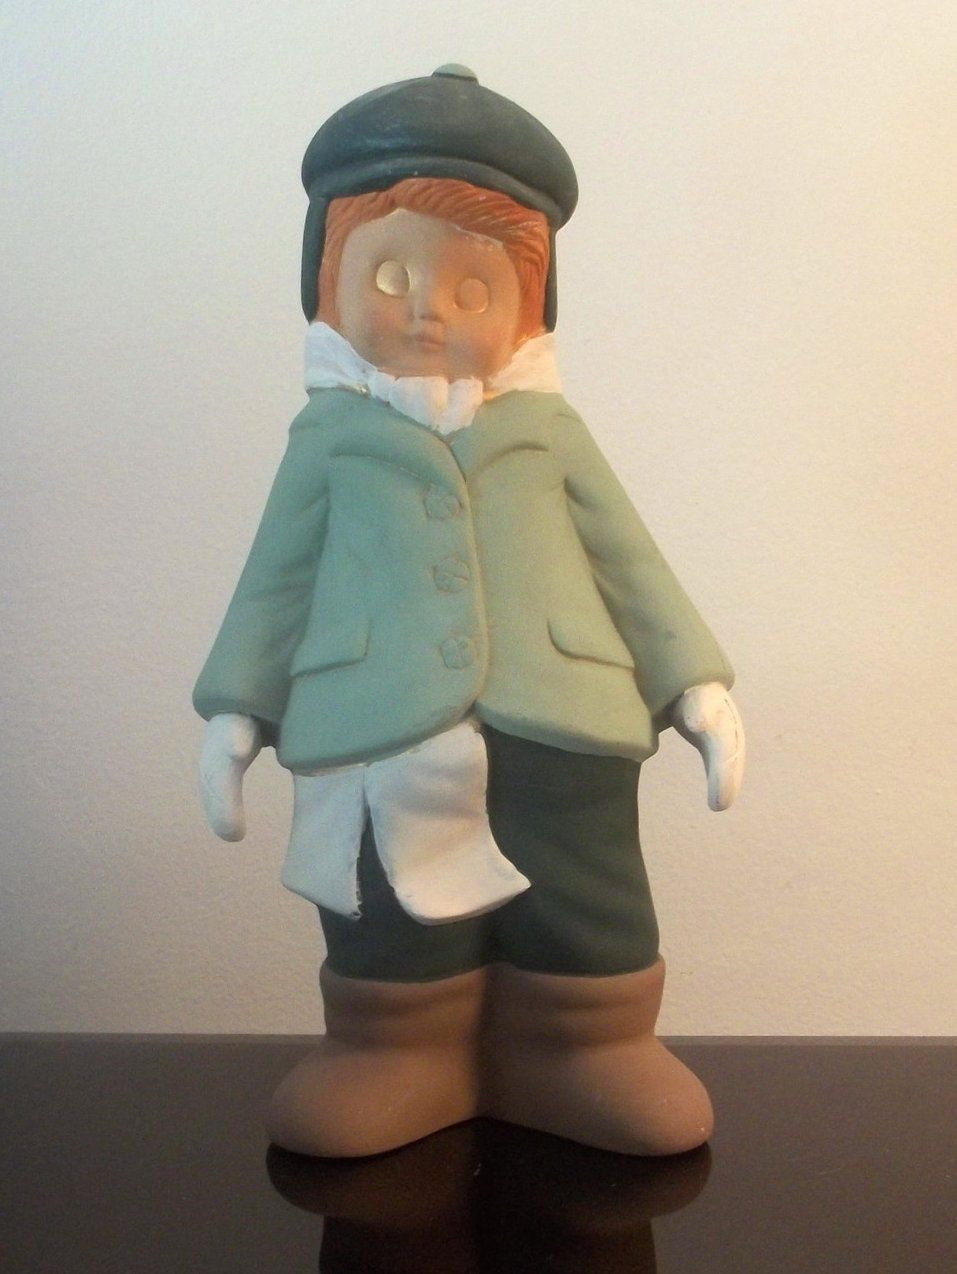 Vintage Christmas Caroler Nicholas 10.5 inches Sugarplum Collection  Beautiful Bisque Christmas Caroler  From the Sugarplum Collection.  This youing boy wears green from head to toe with brown boots and a white scarf and gloves. He stands 10.5 inches high and 5.75 inches wide.  This piece is exquisite and of high quality. Hand painted ceramic bisque. Figure also has sparkles on edges to accent them. See Full Description.